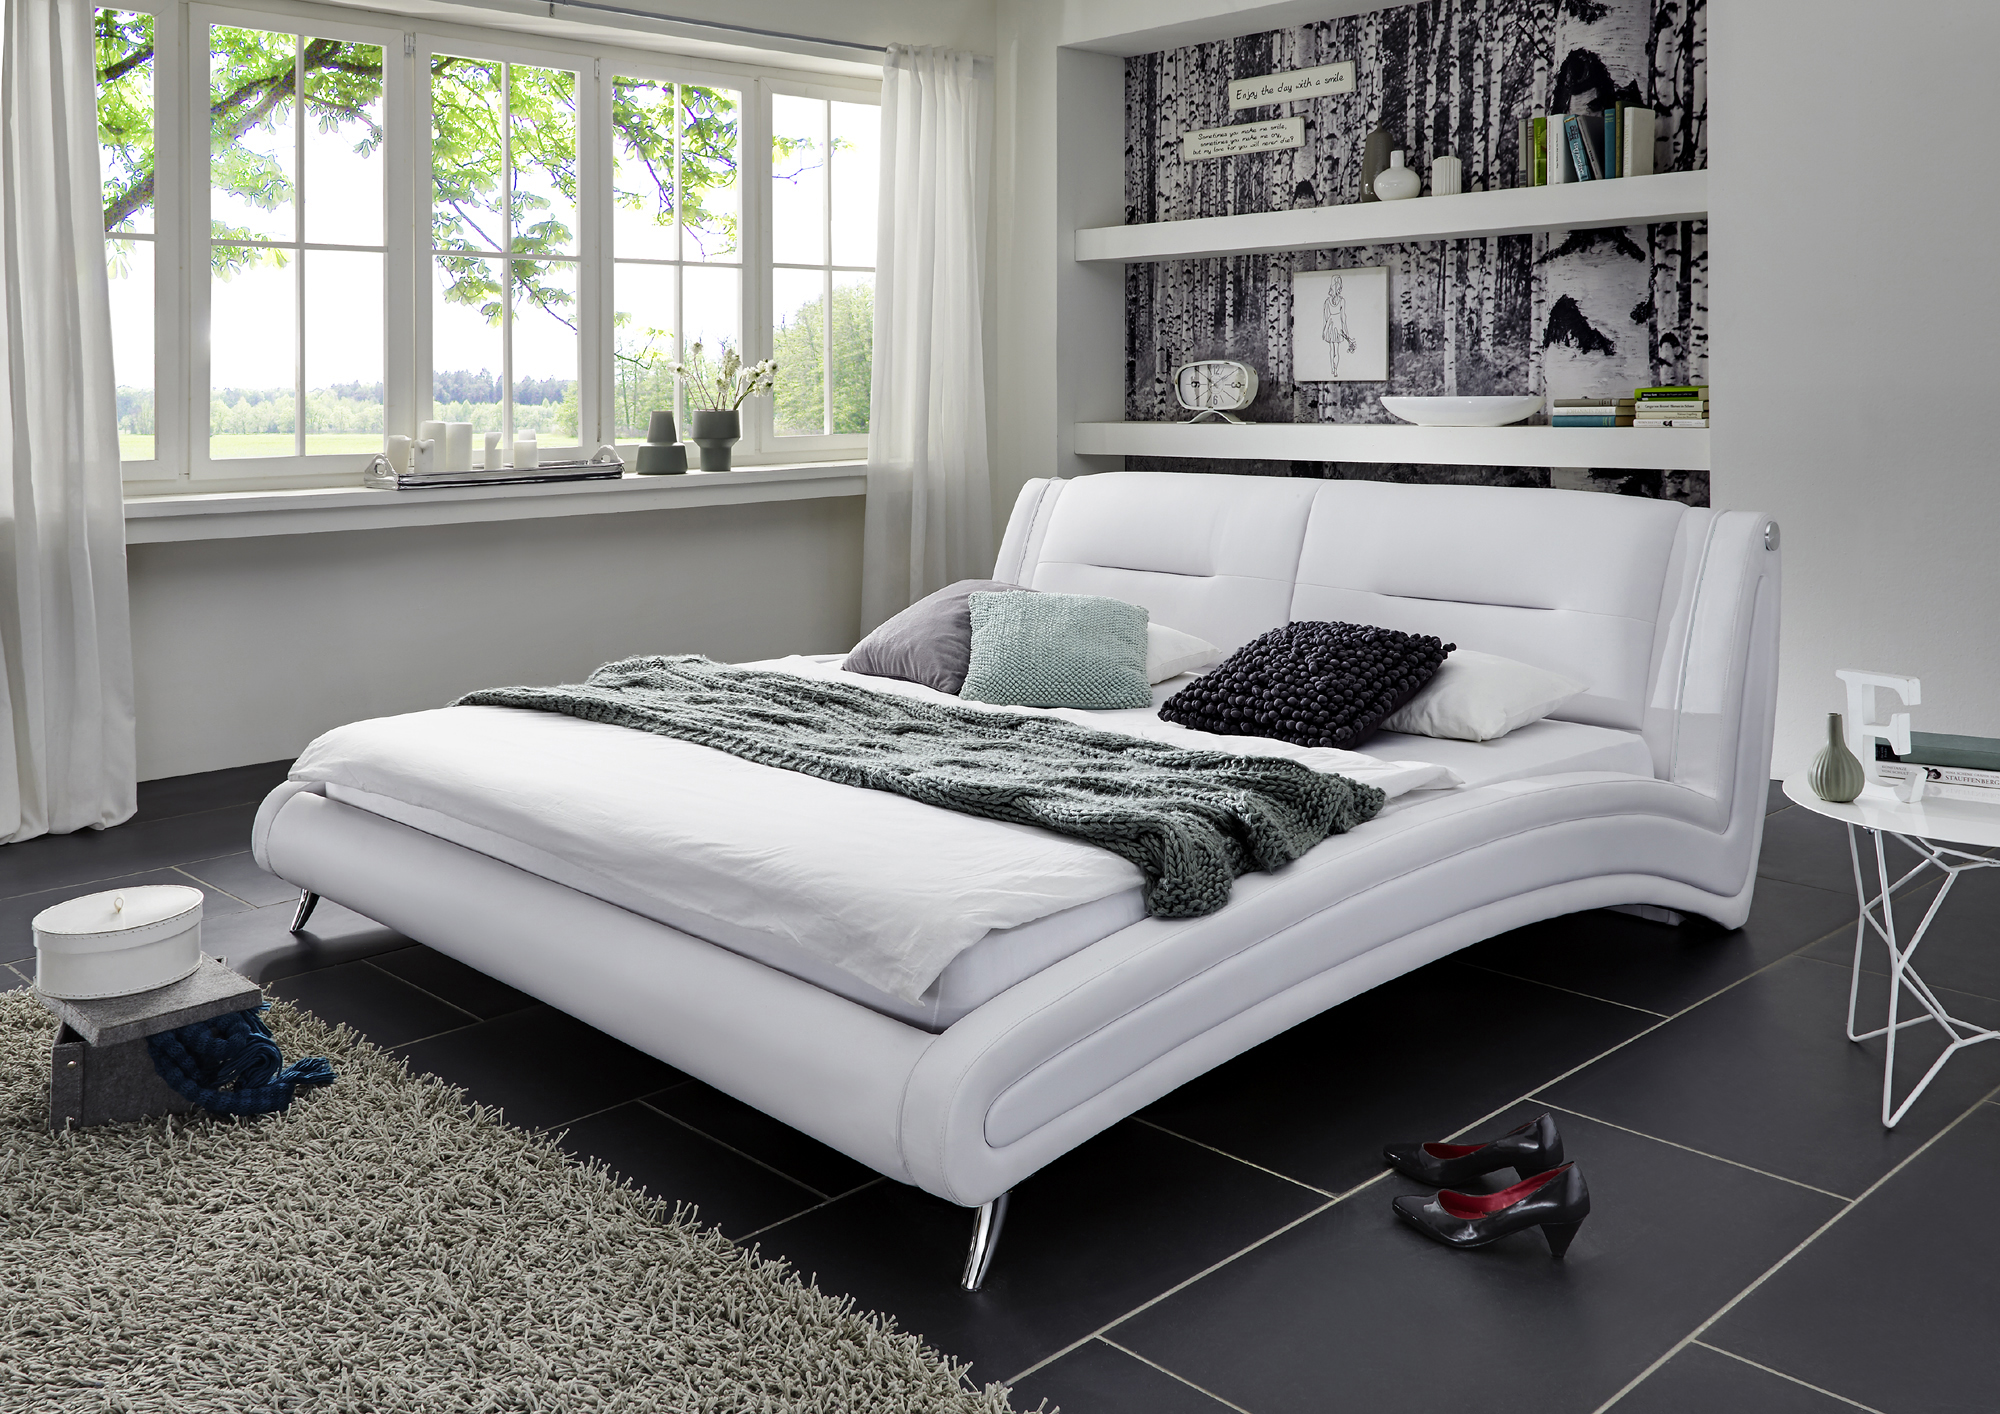 sam design bett 140 x 200 cm wei swing auf lager. Black Bedroom Furniture Sets. Home Design Ideas